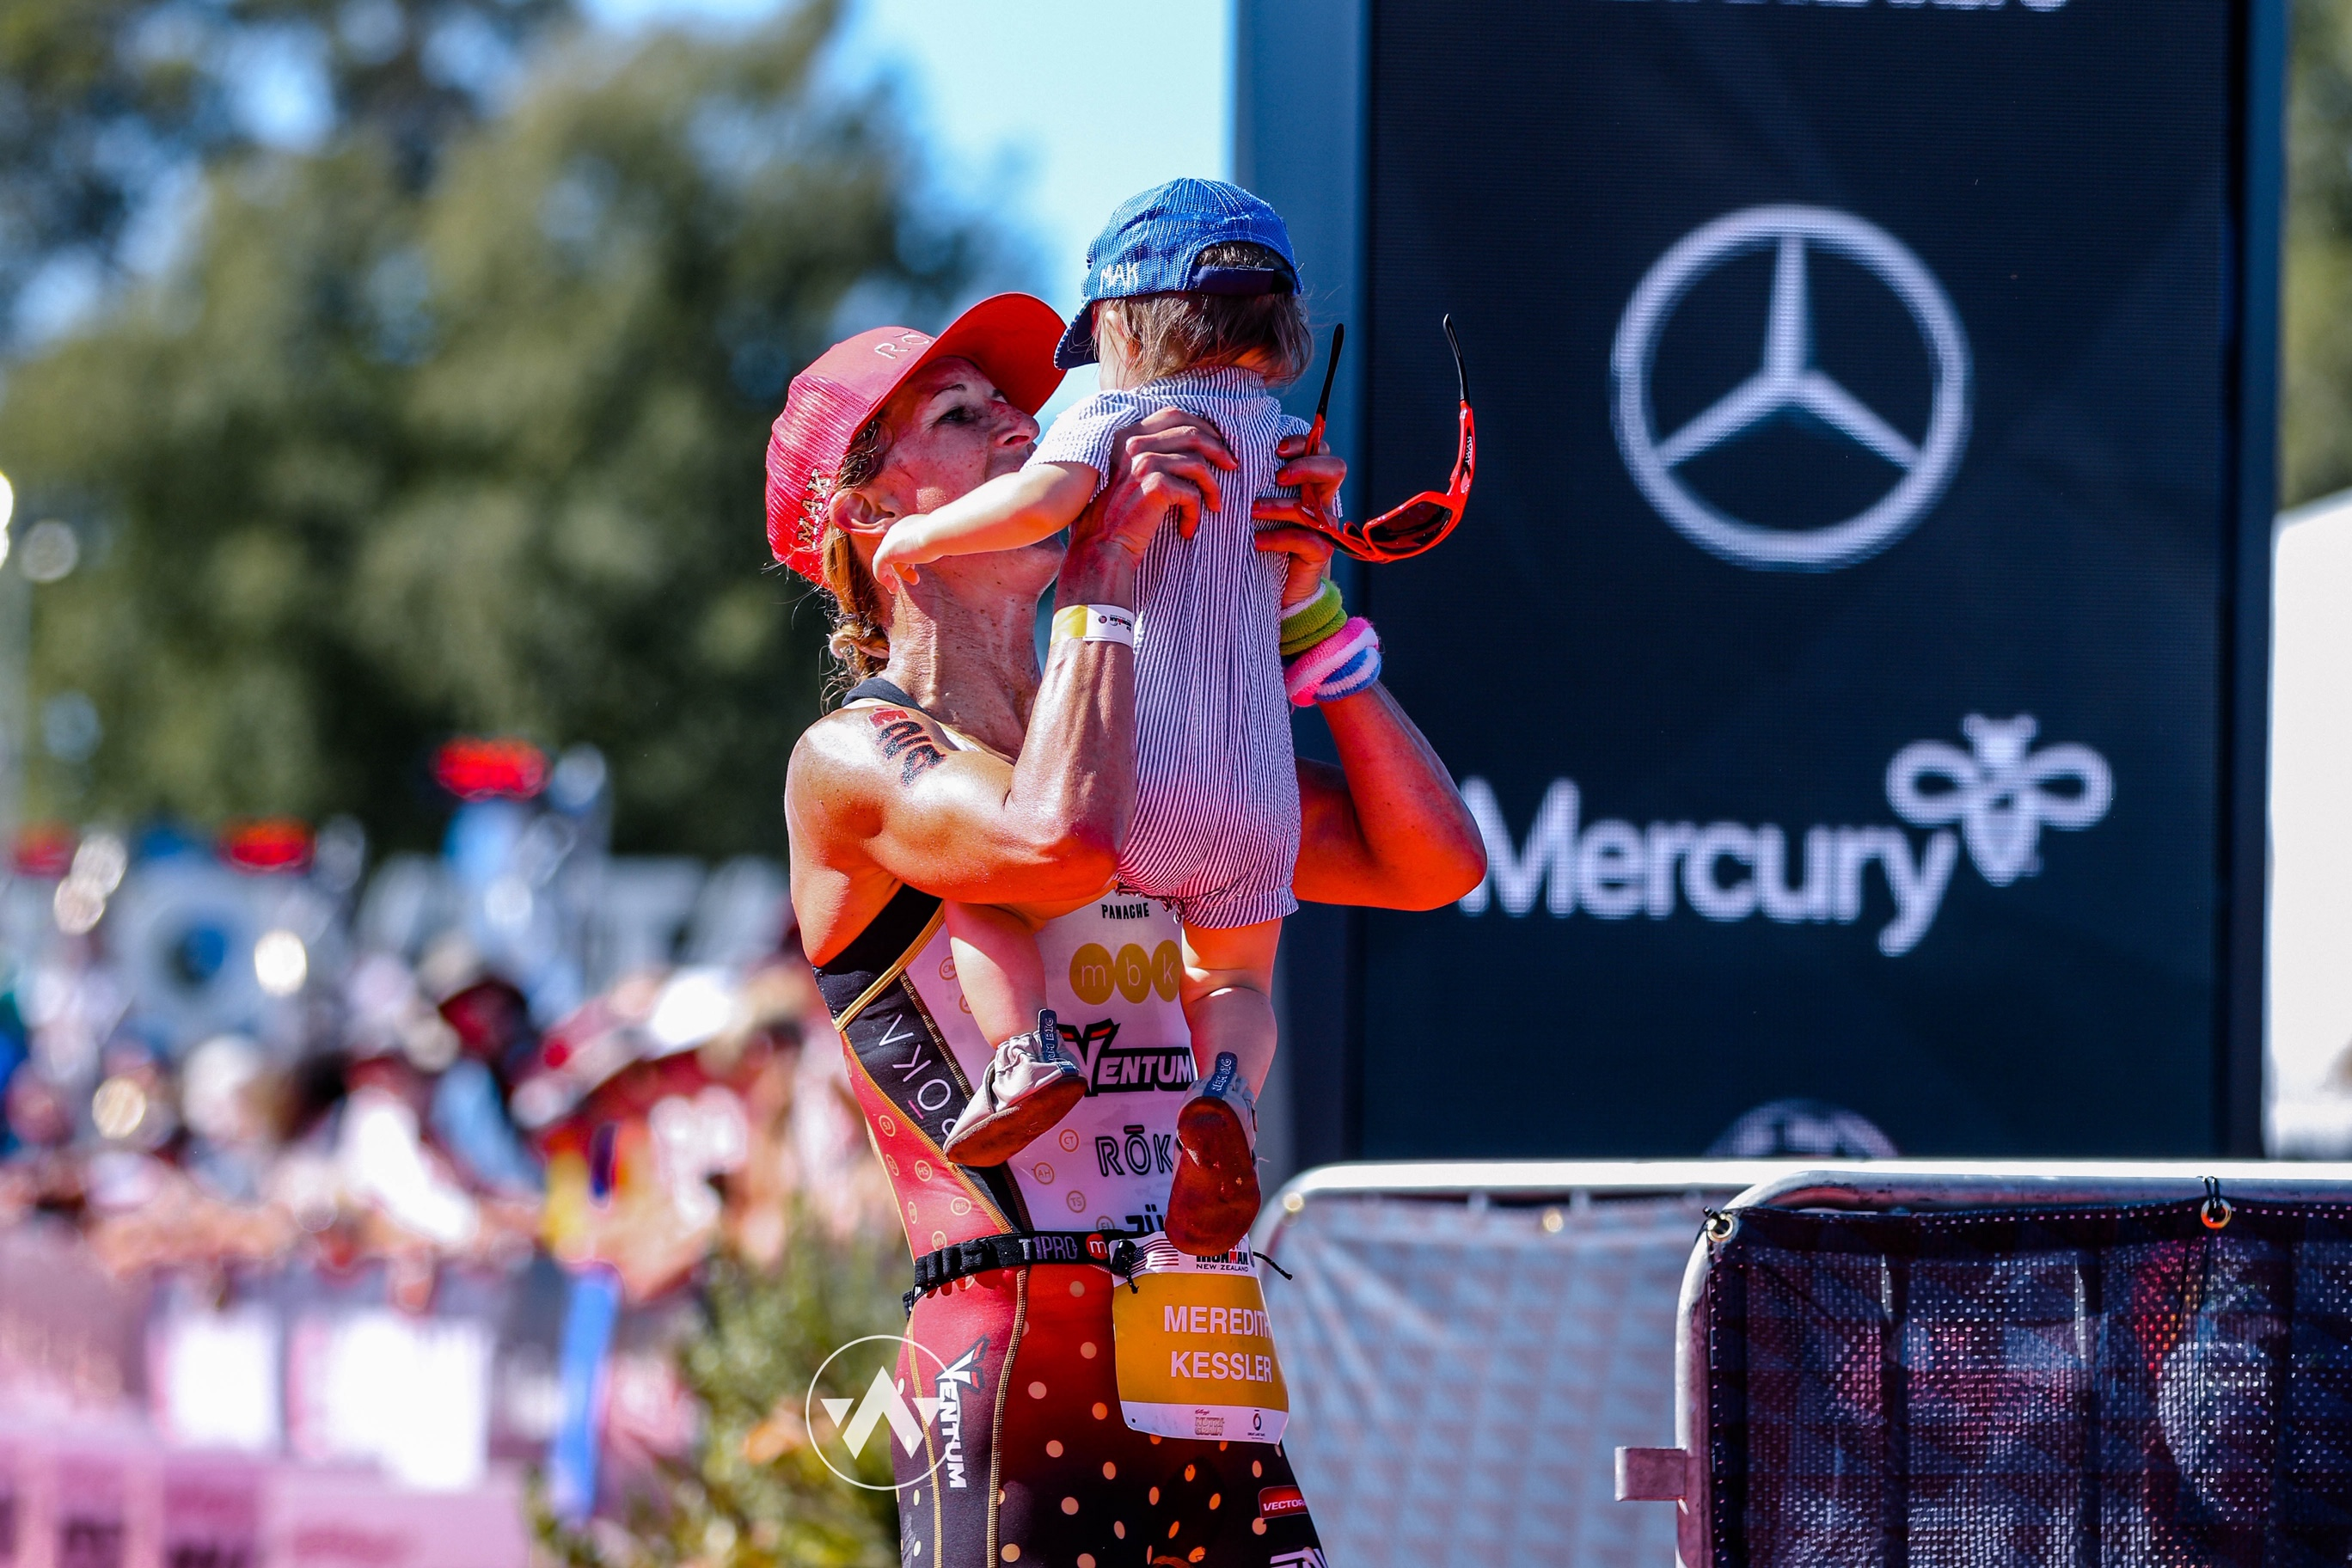 Meredith Kessler Professional Triathlete Finish Line 2019 Ironman New Zealand Holding son Mak Witsup Photo